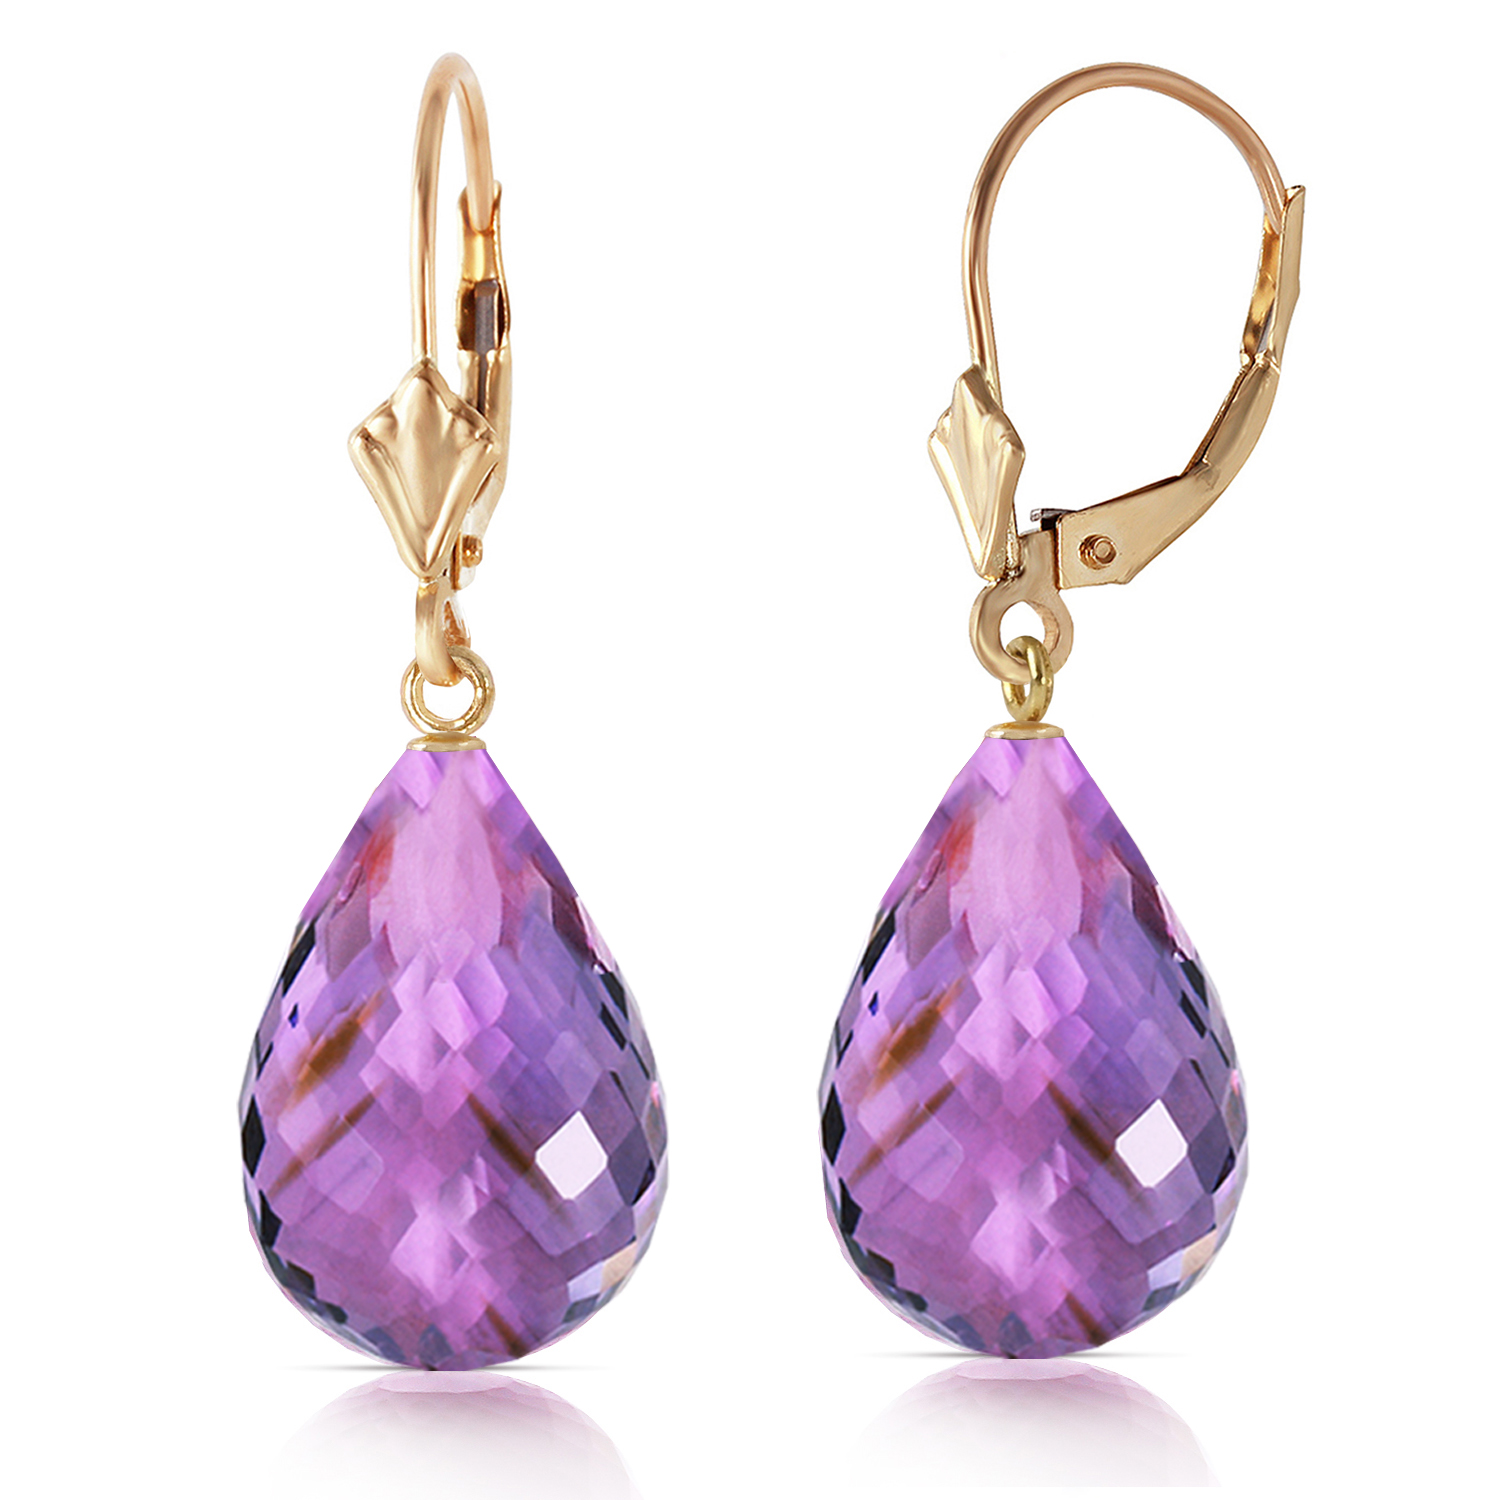 14 carat 14k solid gold loveliness amethyst earrings ebay. Black Bedroom Furniture Sets. Home Design Ideas